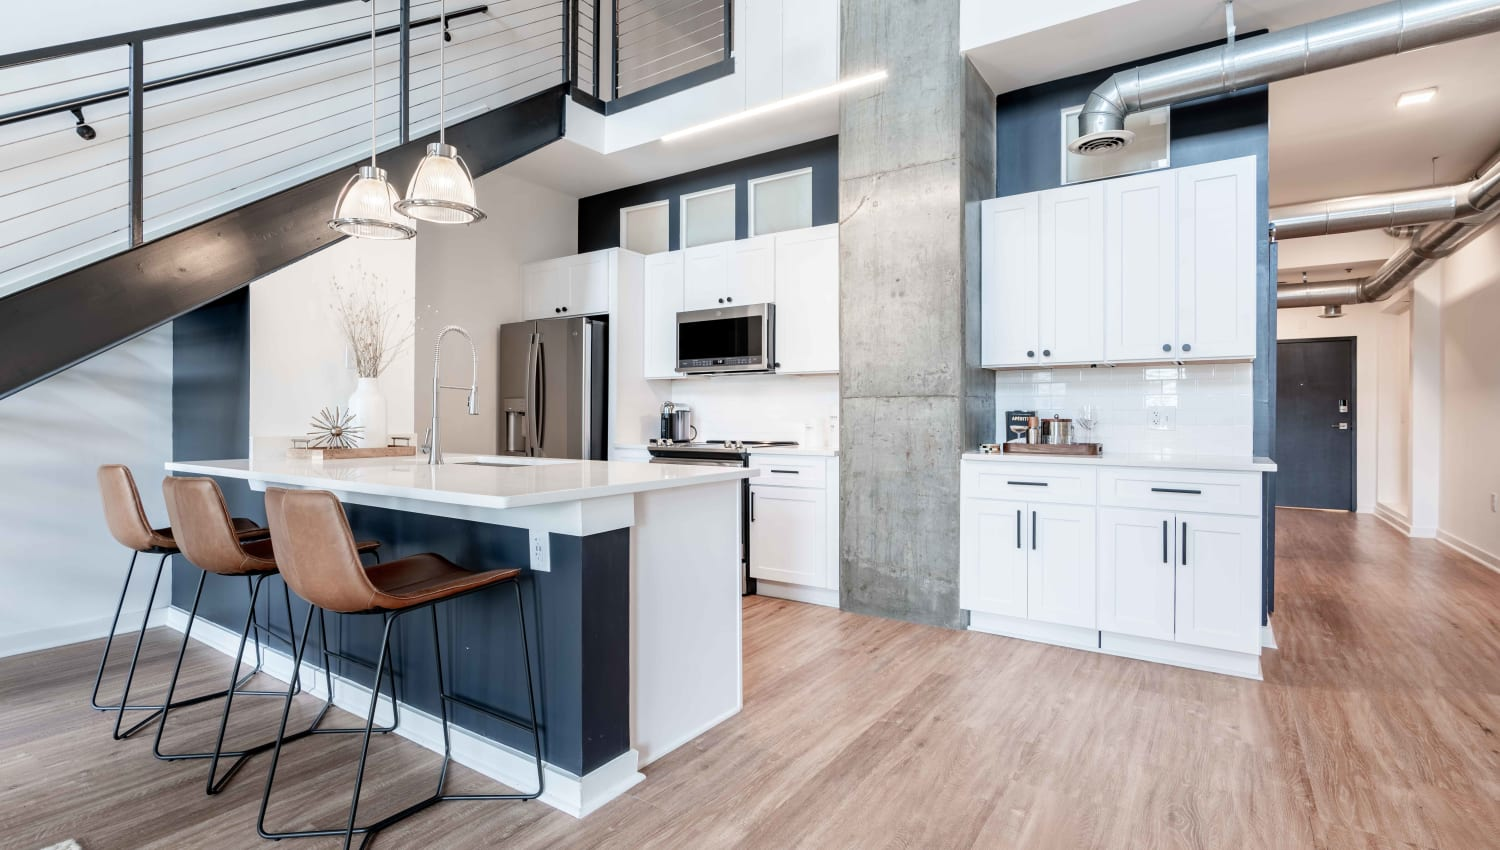 Very spacious apartment with modern finishes at 17th Street Lofts in Atlanta, Georgia